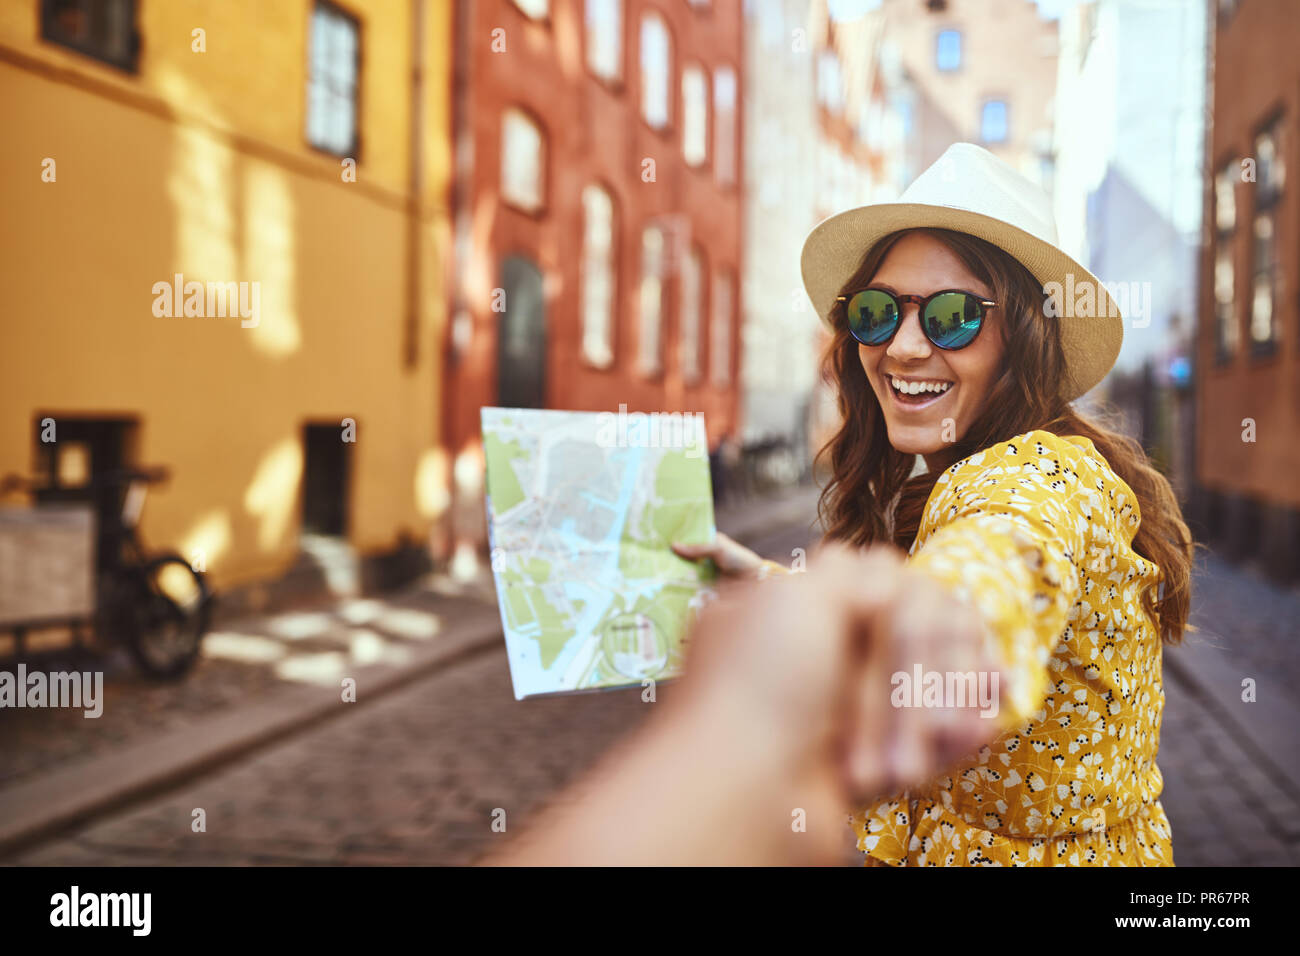 POV of a smiling young woman holding a map and wearing sunglasses leading another person by the hand while exploring city streets together - Stock Image